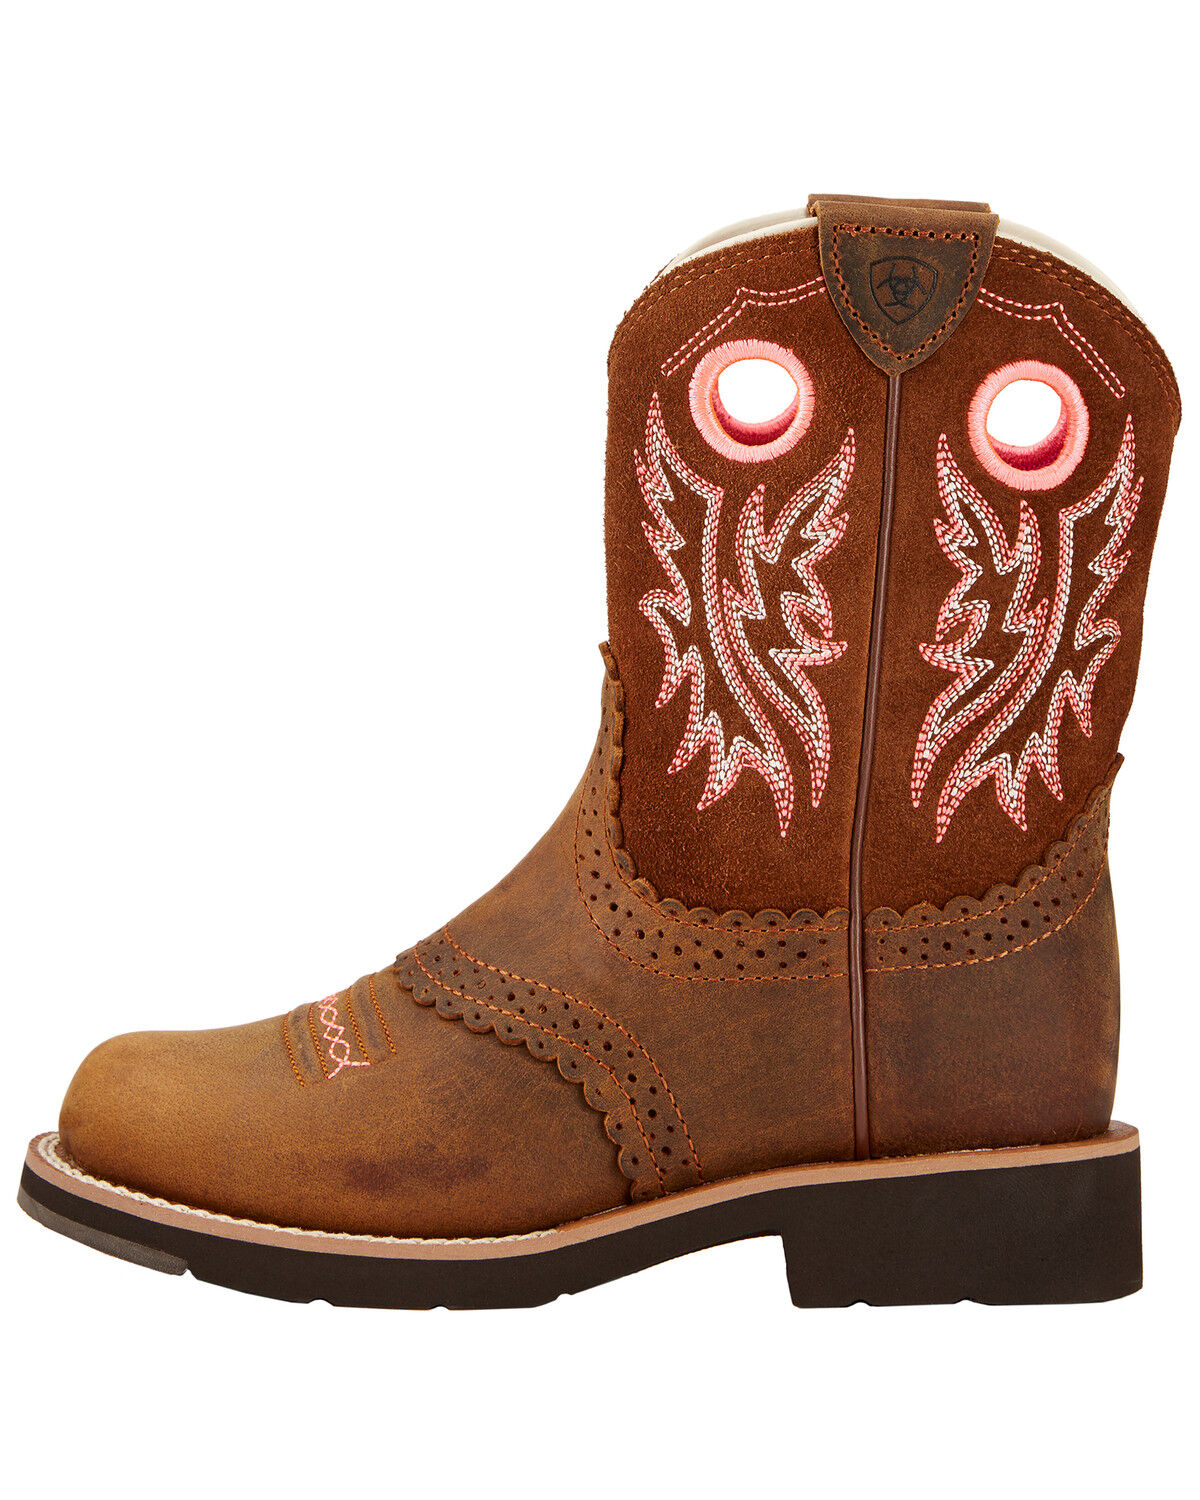 Fatbaby Cowgirl Boots - Round Toe